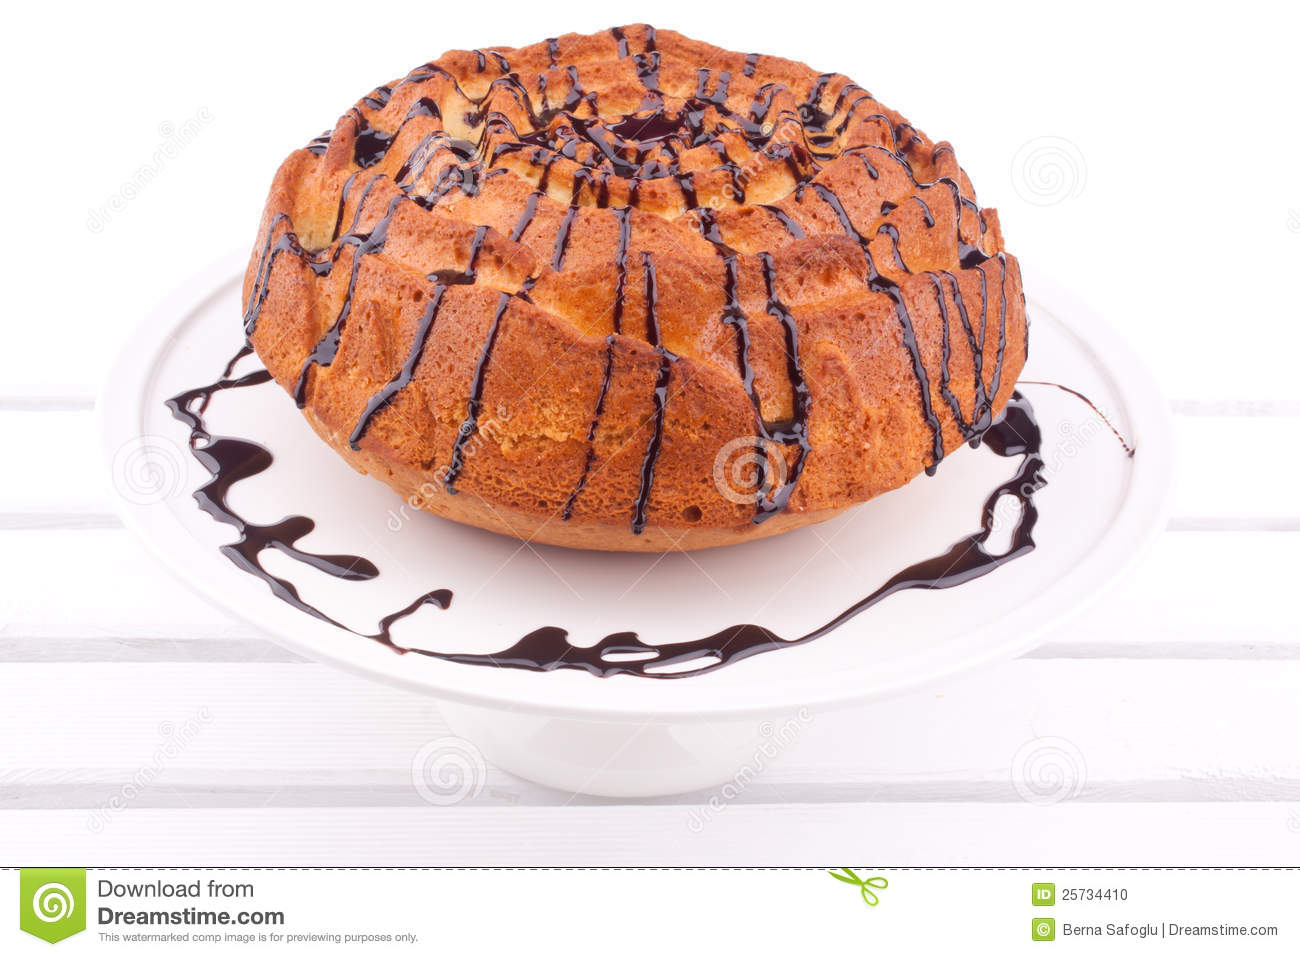 Cake with chocolate sauce